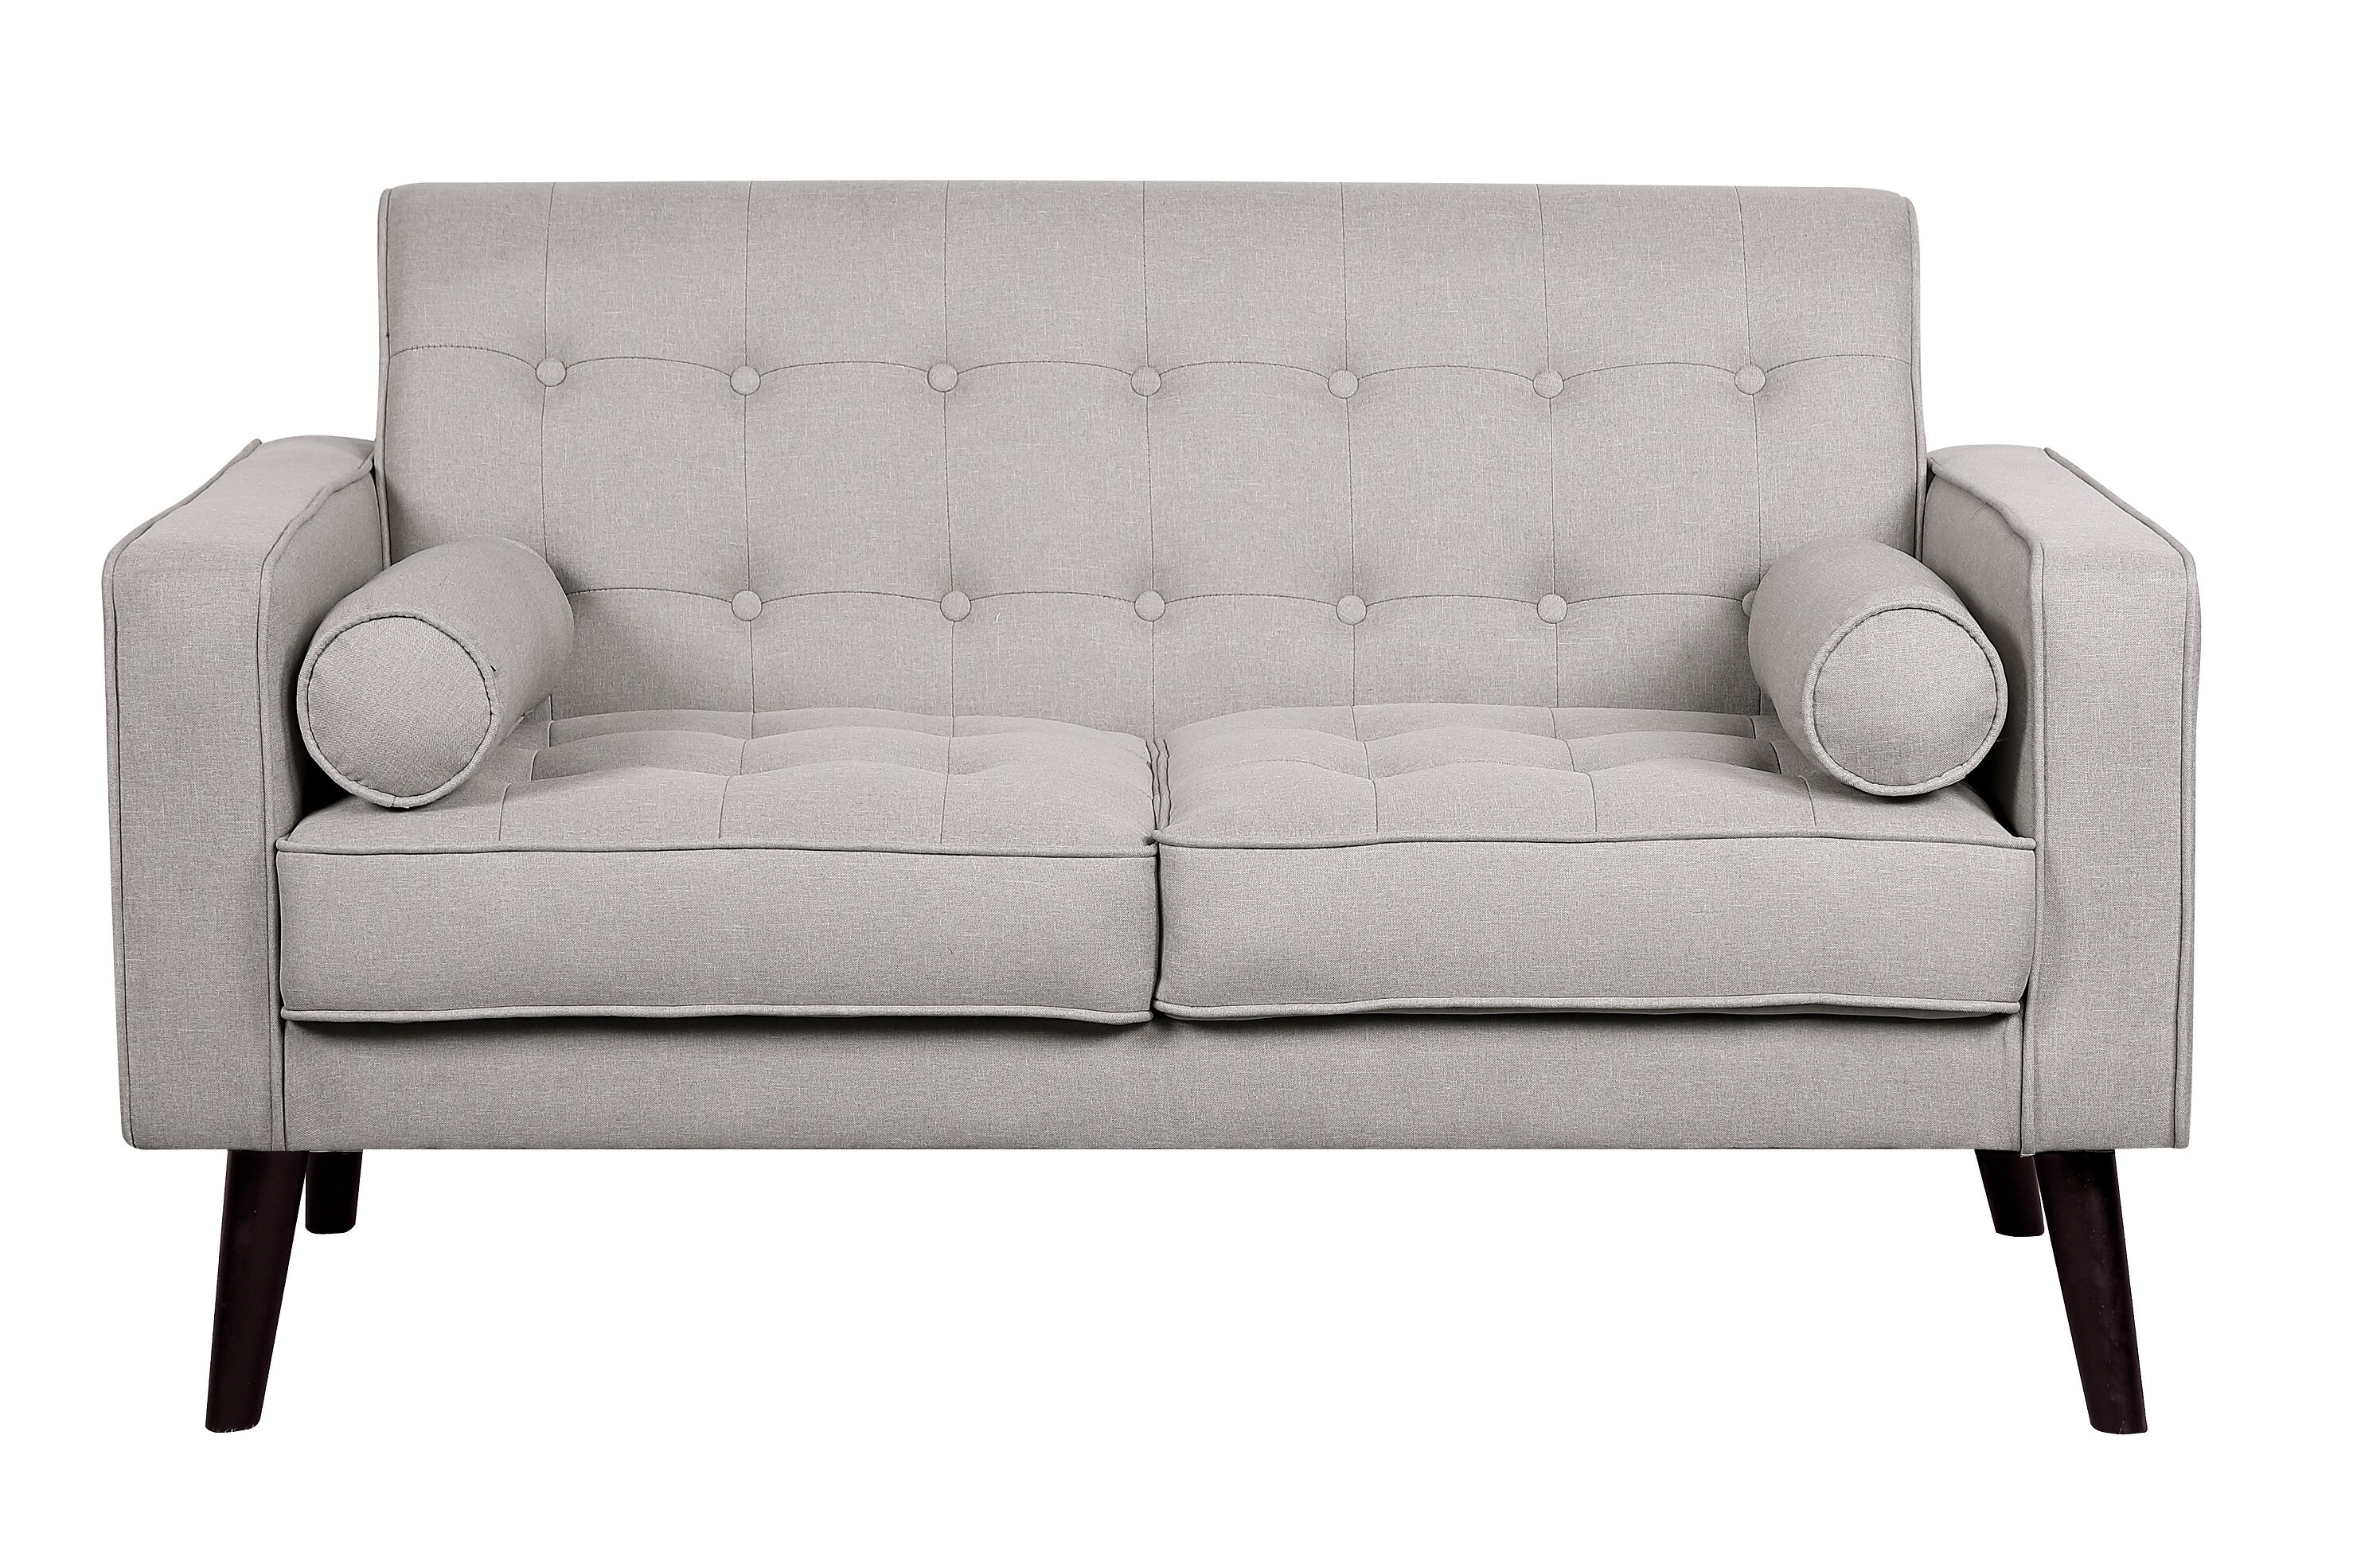 Beige Linen Sofas You Ll Love In 2020